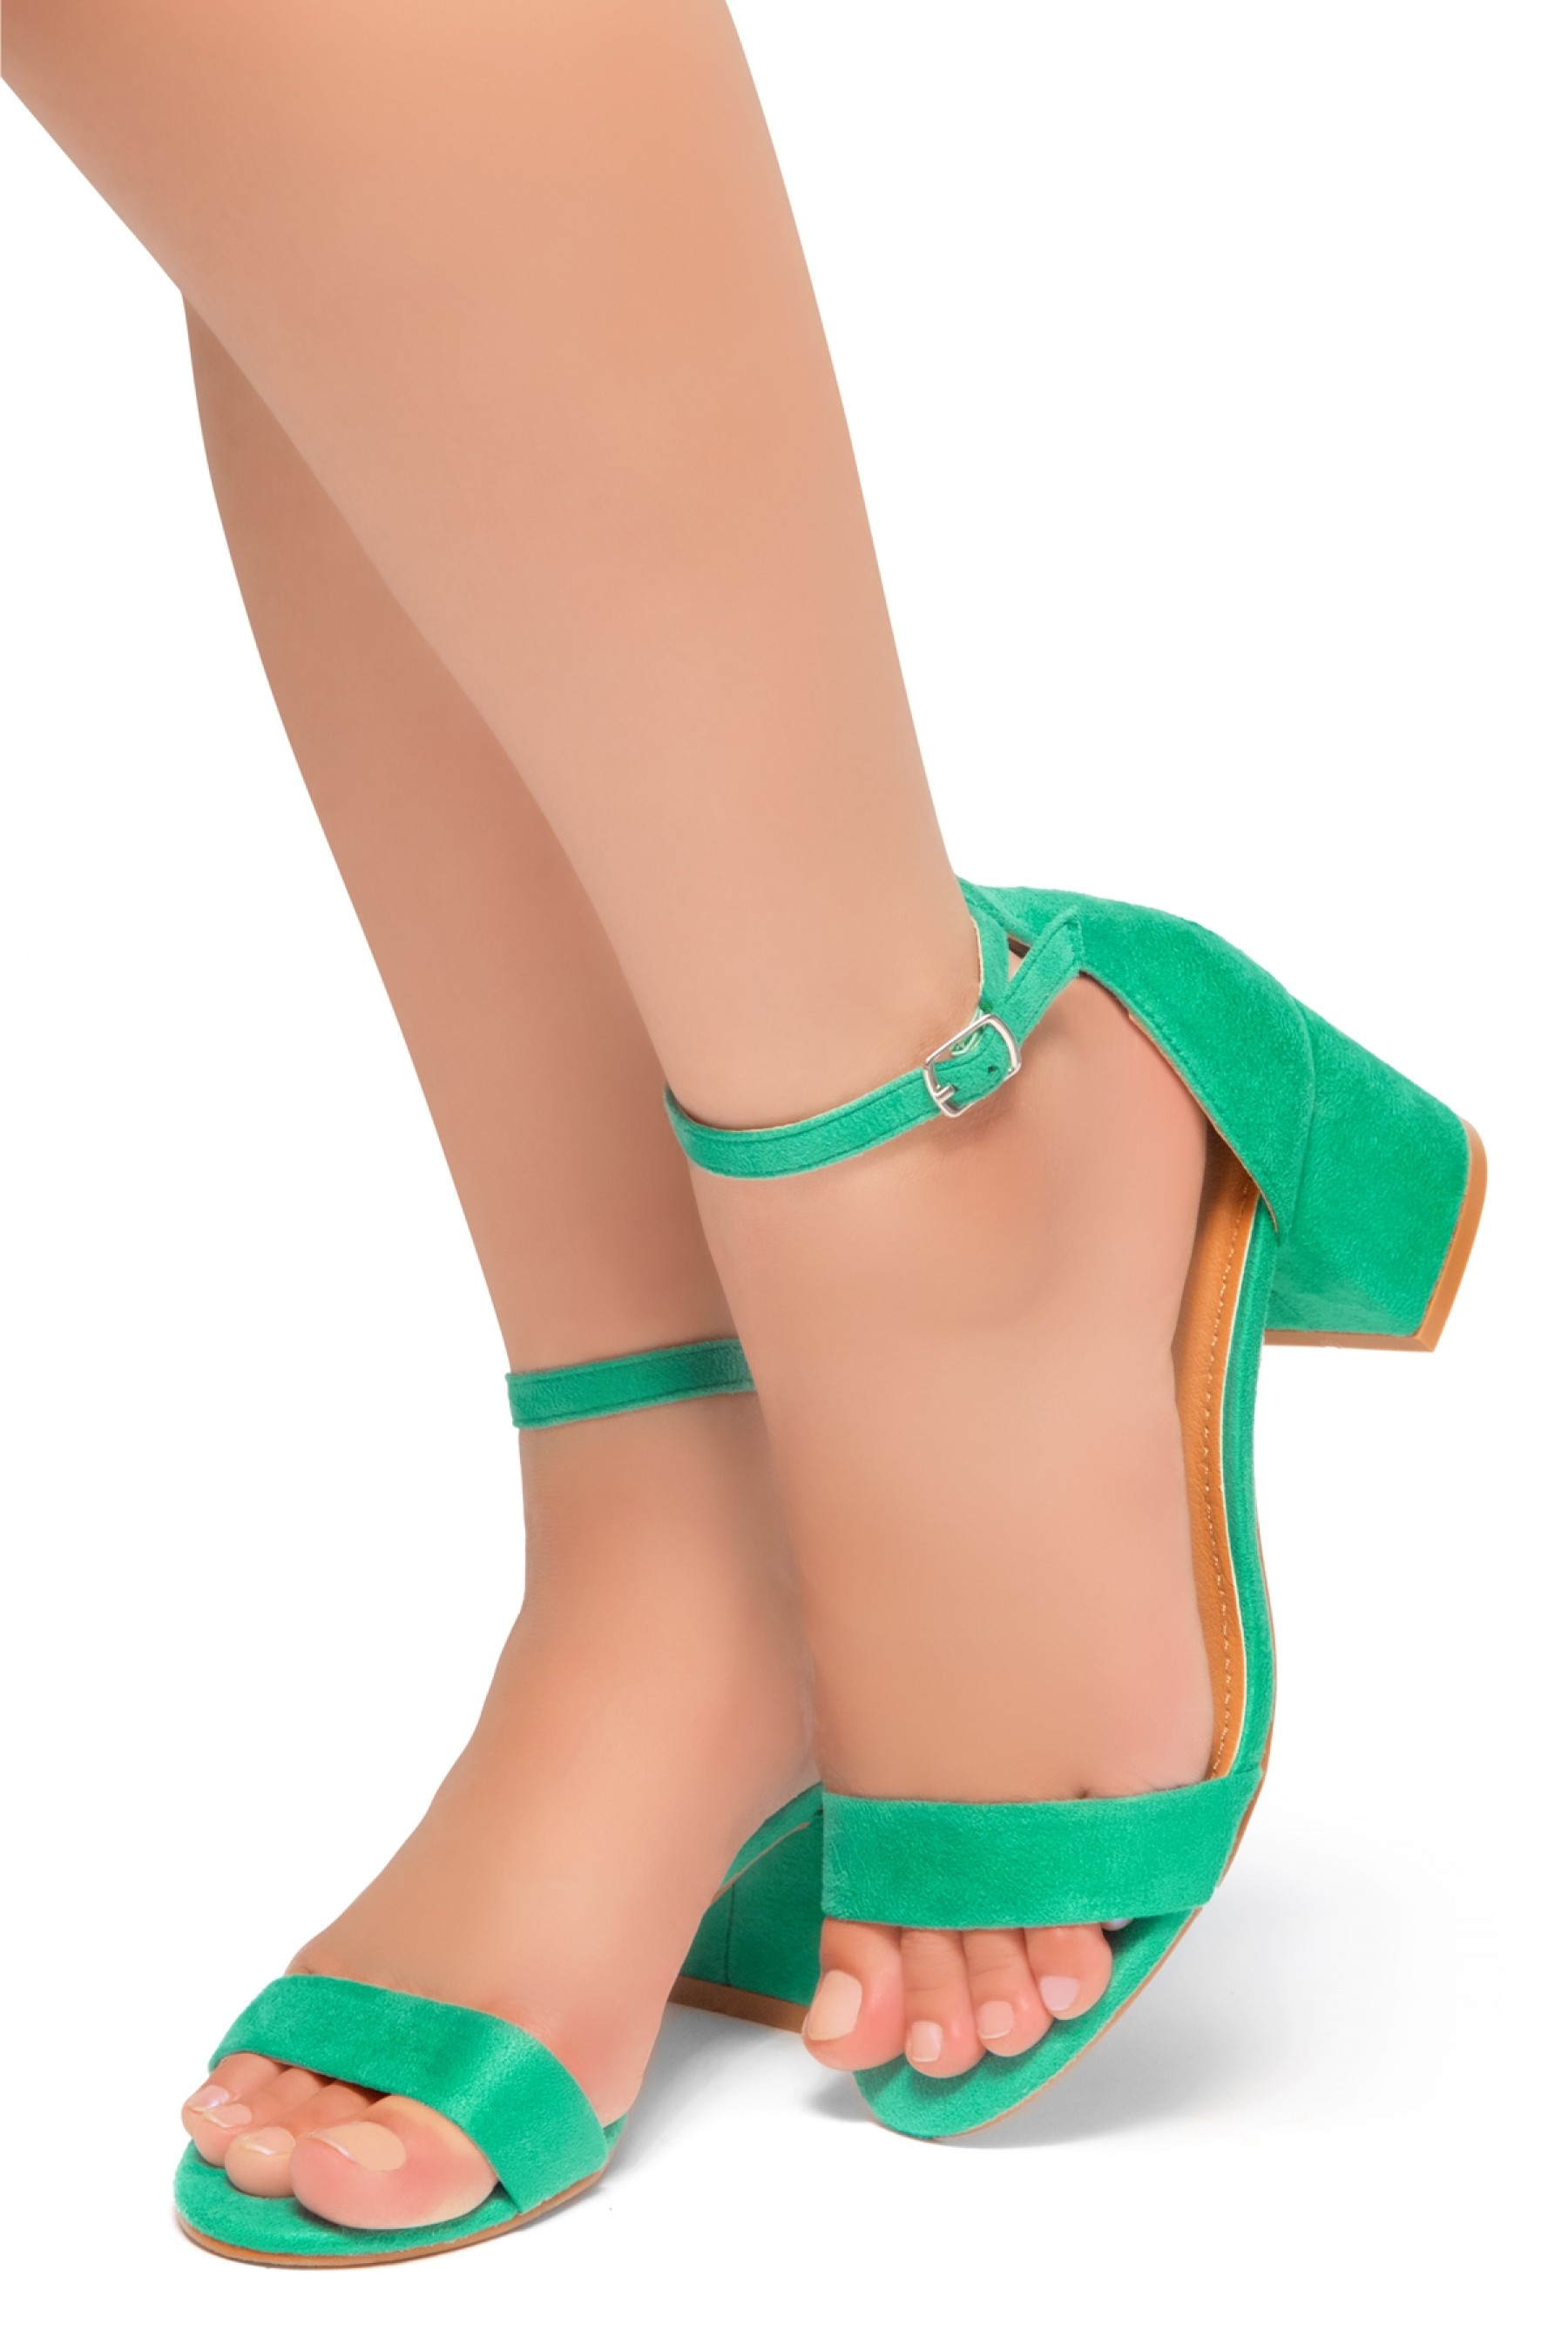 HerStyle SUNDAY-open toe, block heel,ankle strap with an adjustable buckle (Green)